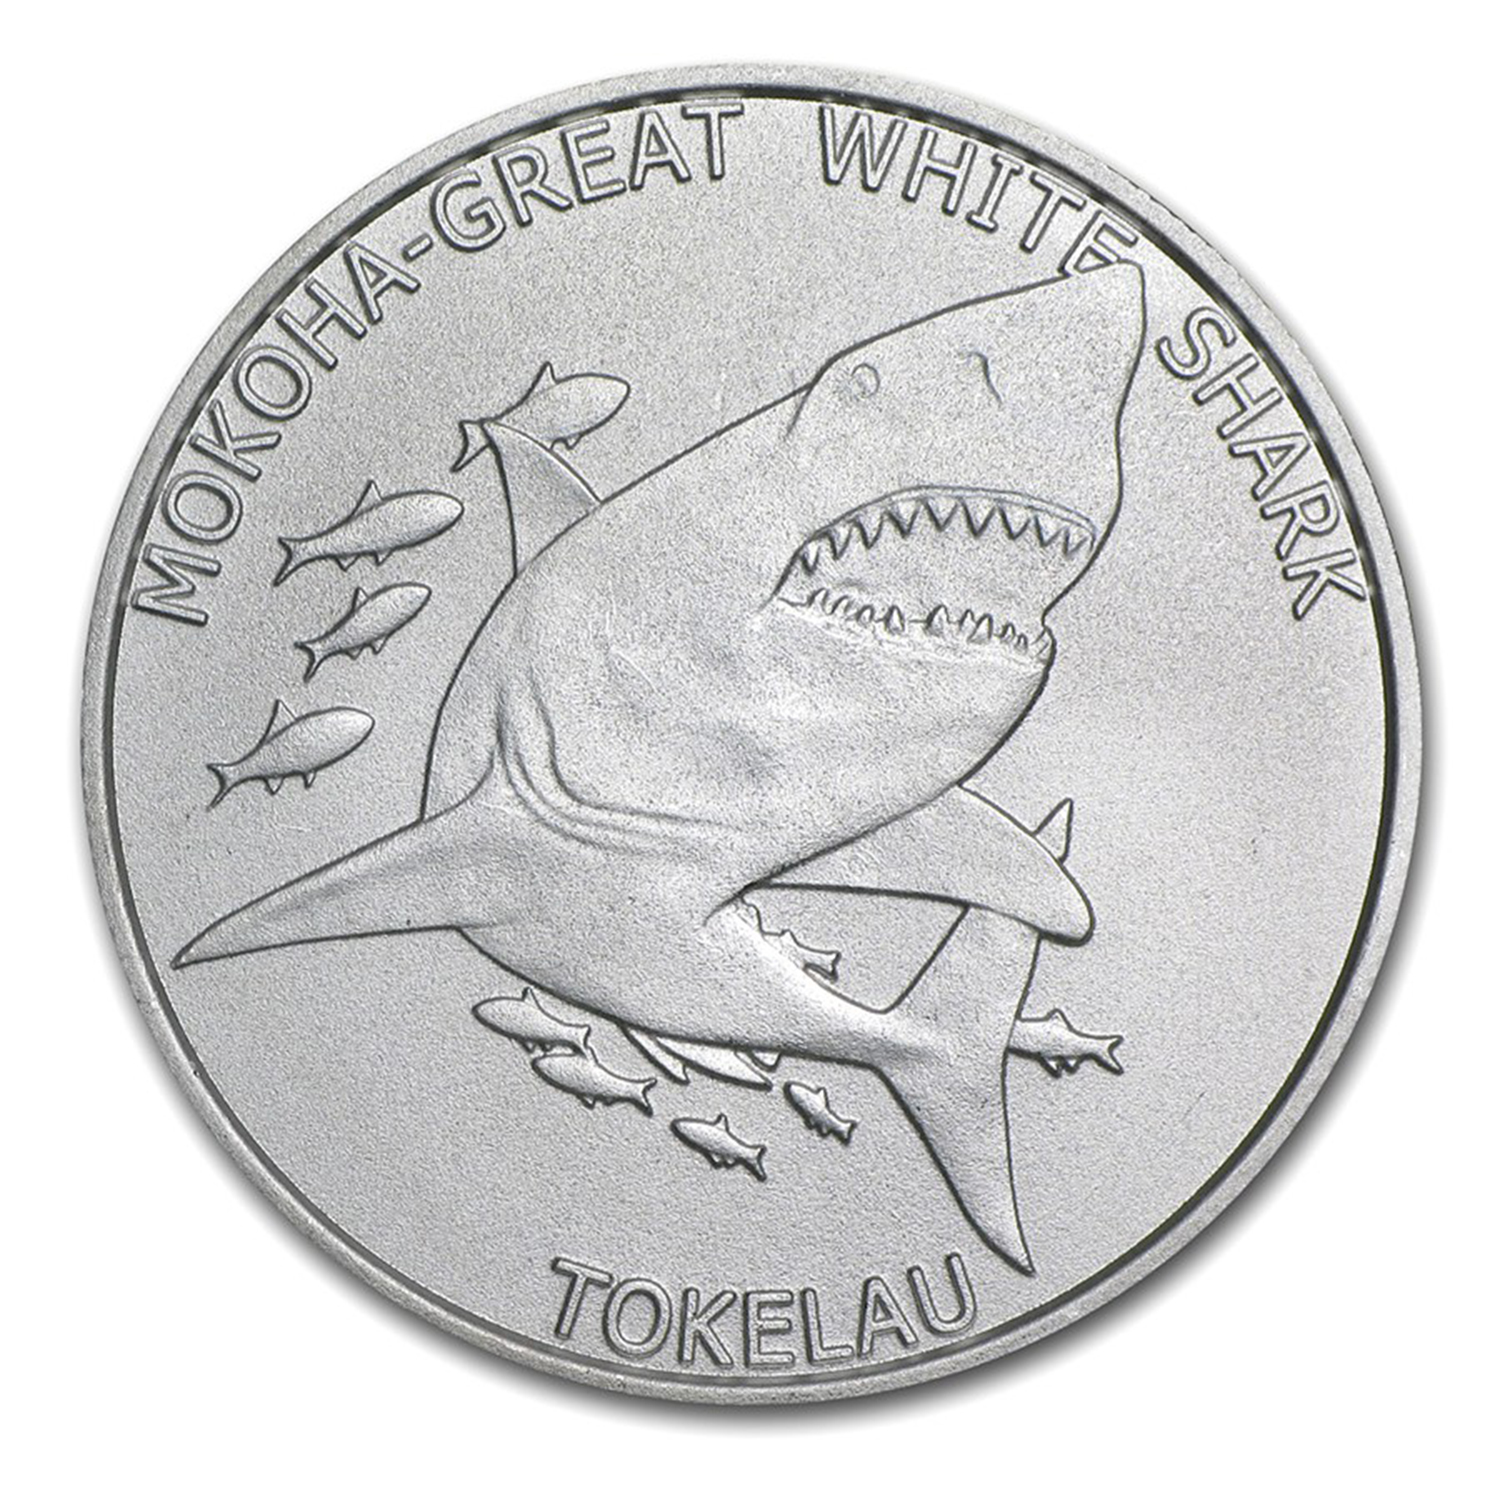 2015 Tokelau 1 oz Silver $5 Mokoha Great White Shark